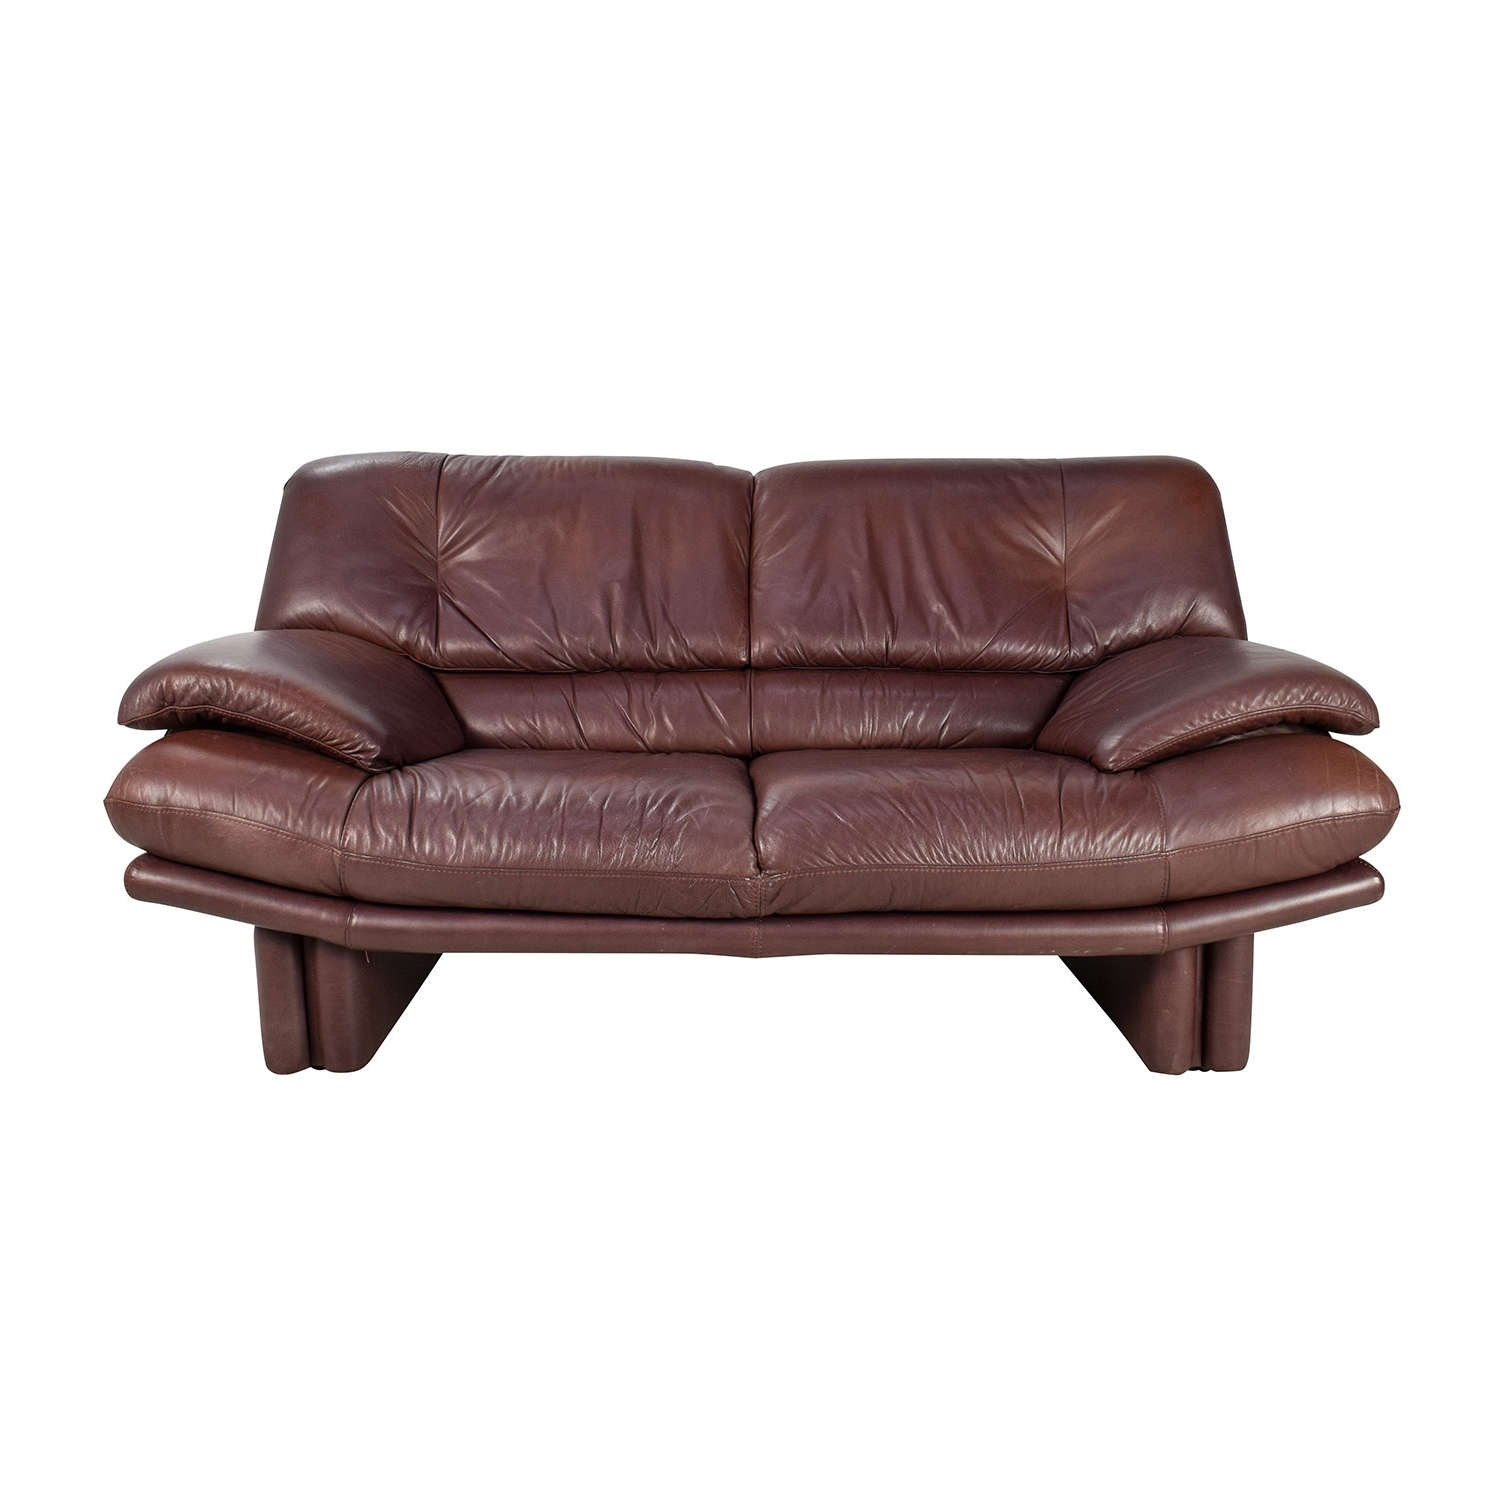 [%67% Off – Maurice Villency Maurice Villency Brown Leather Sofa / Sofas For Most Current Canterbury Leather Sofas|Canterbury Leather Sofas For Well Liked 67% Off – Maurice Villency Maurice Villency Brown Leather Sofa / Sofas|Most Popular Canterbury Leather Sofas Inside 67% Off – Maurice Villency Maurice Villency Brown Leather Sofa / Sofas|Current 67% Off – Maurice Villency Maurice Villency Brown Leather Sofa / Sofas With Canterbury Leather Sofas%] (View 1 of 15)